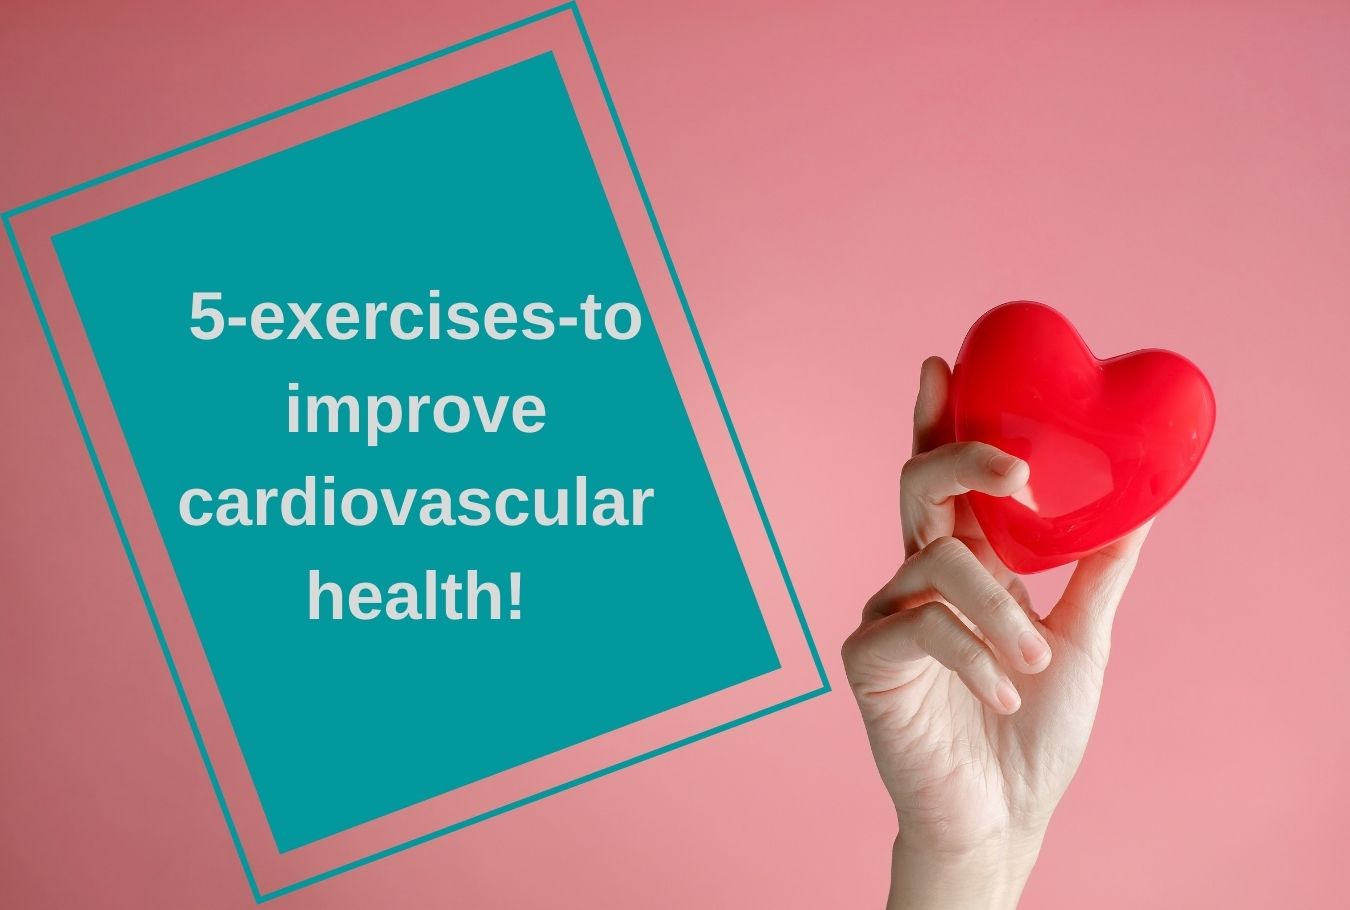 5-exercises-to-improve-cardiovascular-health